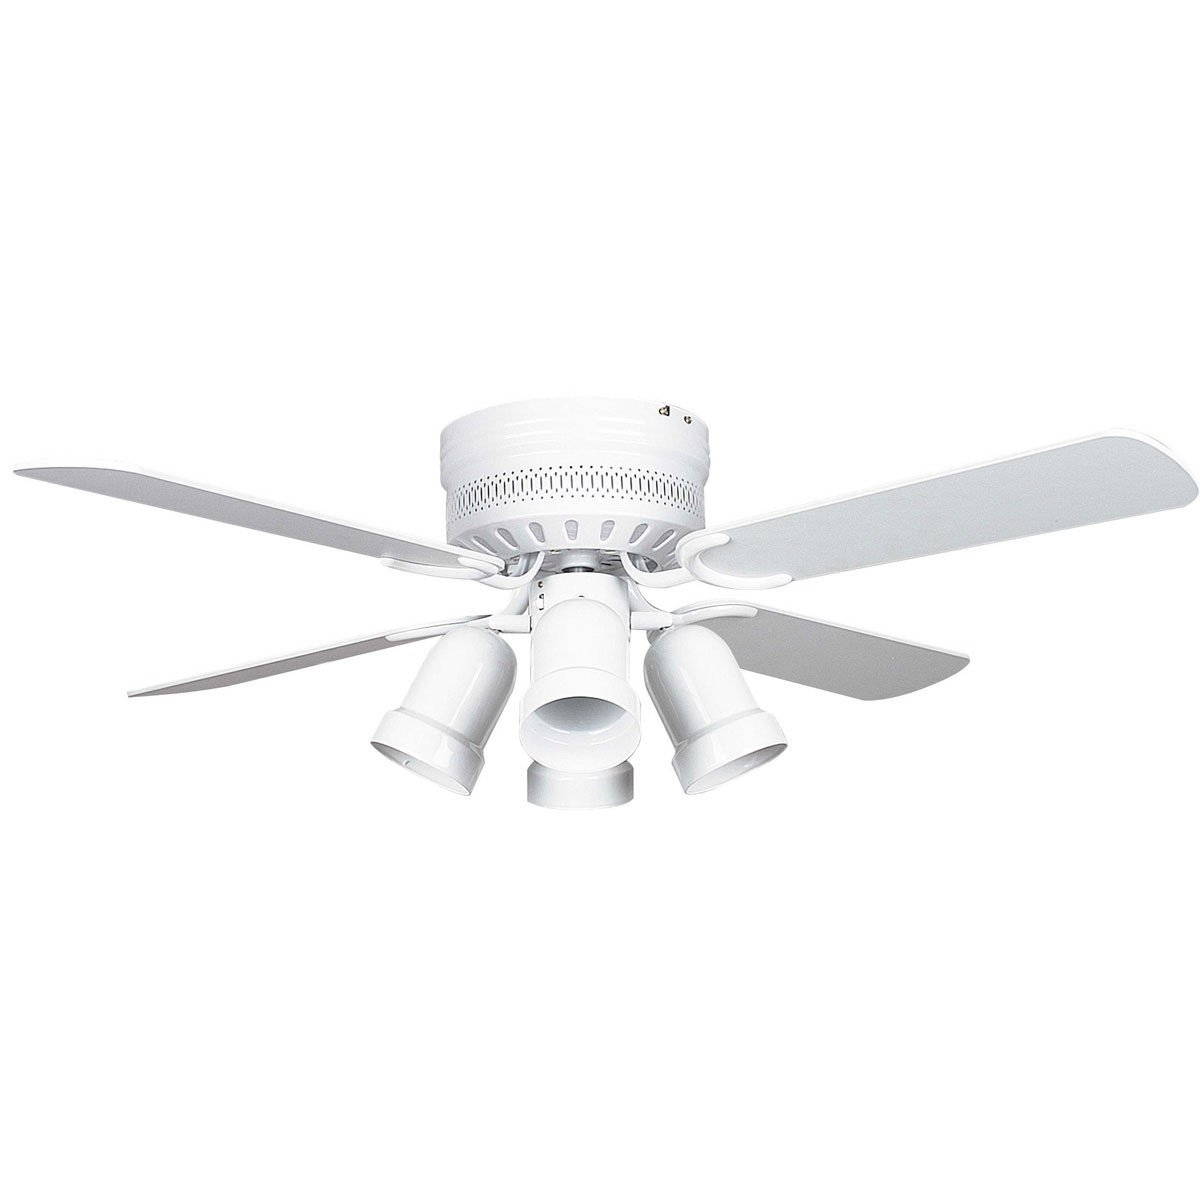 "Concord Fans 42"" Small White Low Profile Hugger Ceiling Fan with Lights"